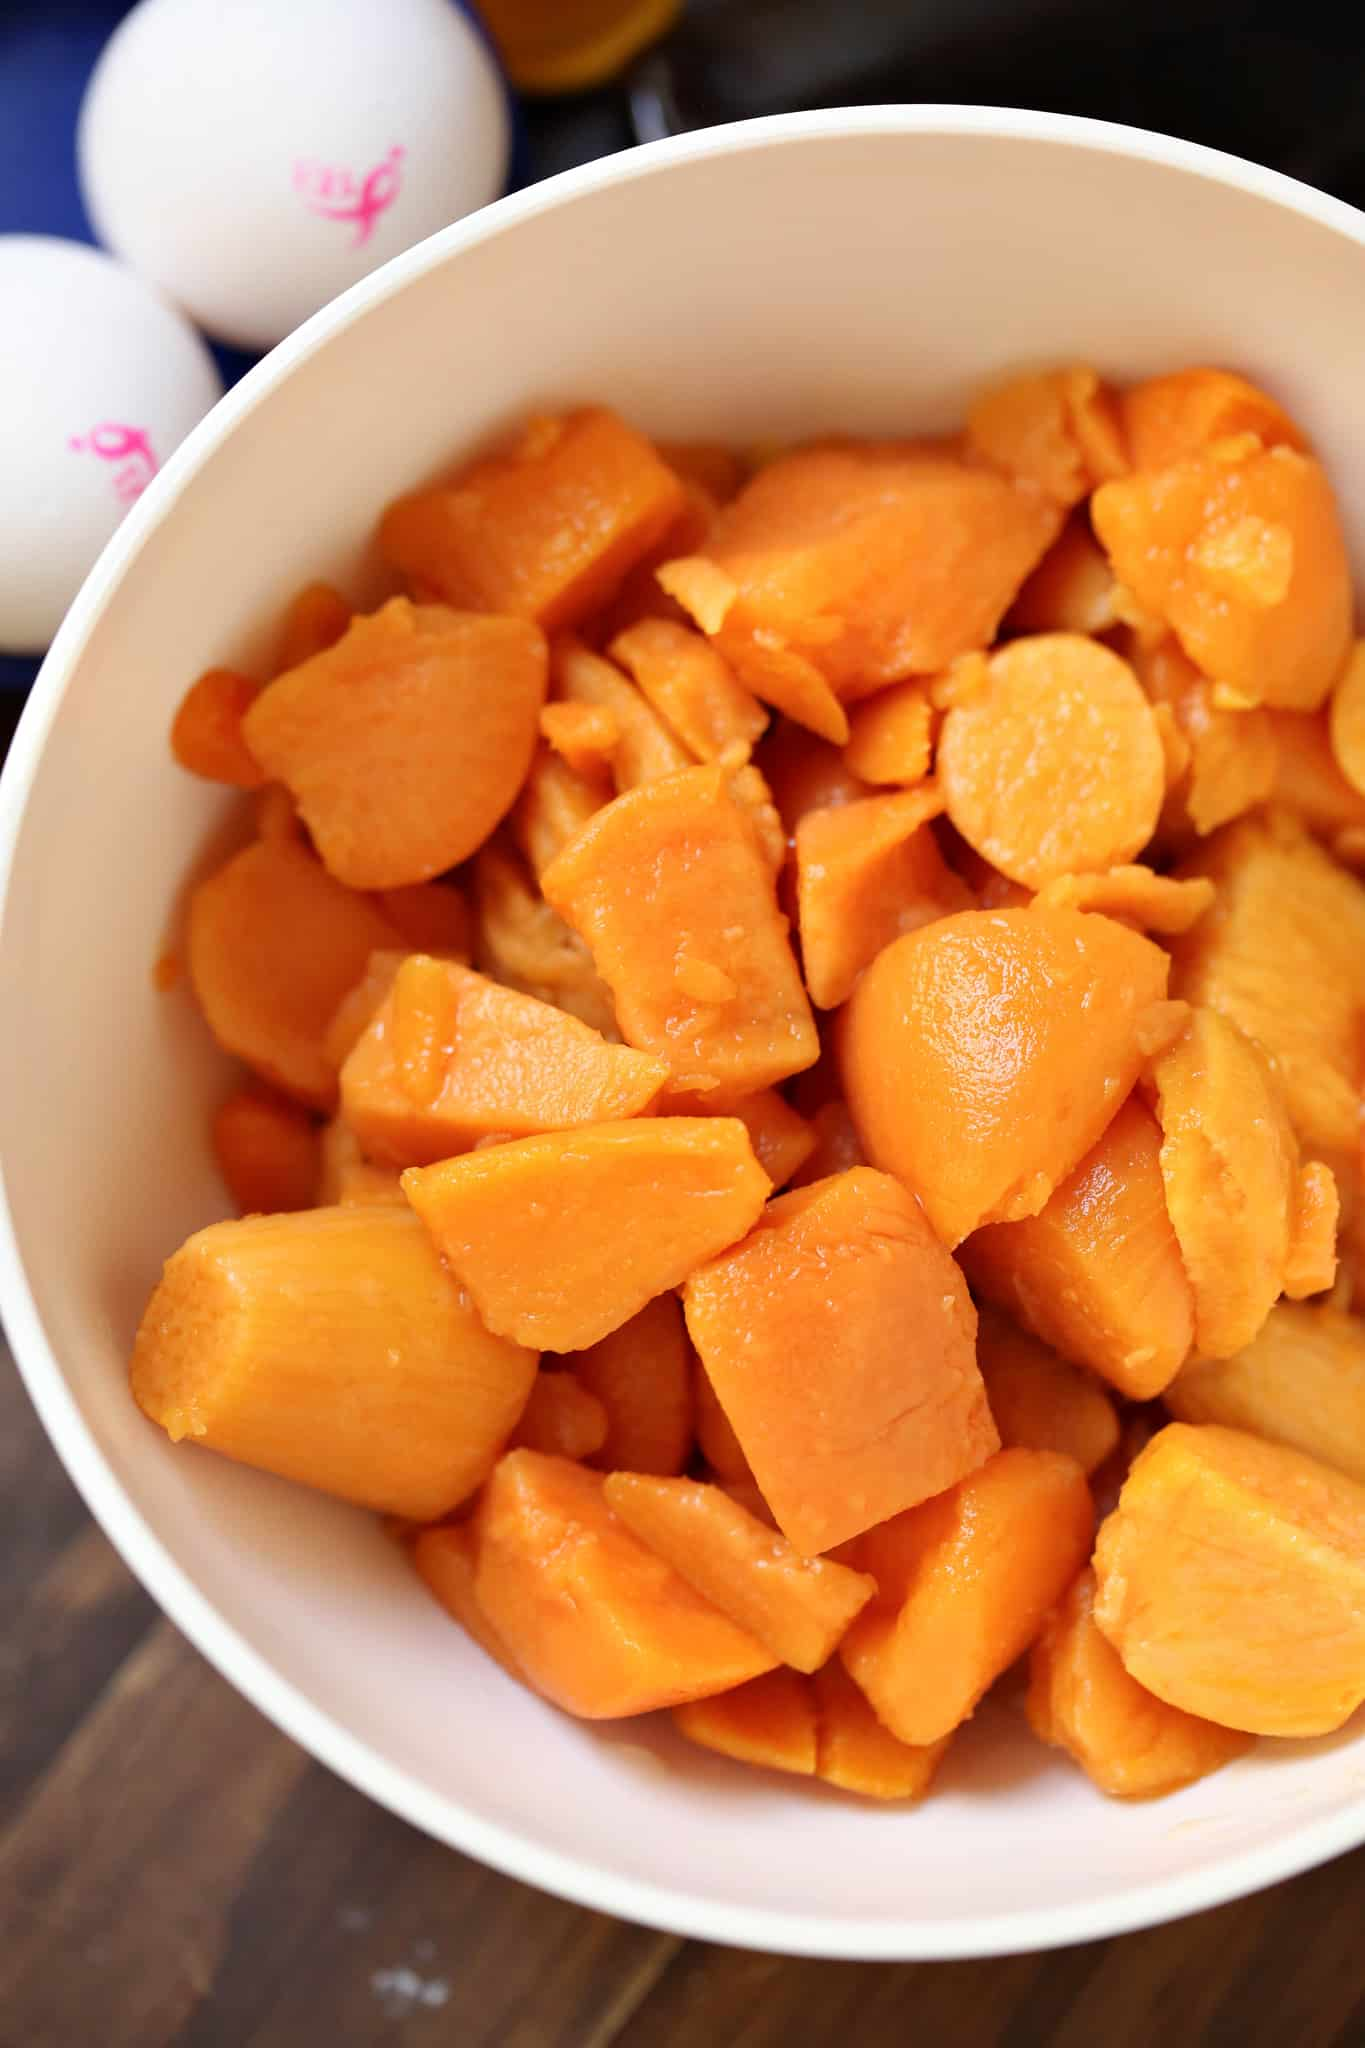 What's New and Beneficial about Sweet Potatoes. Orange-fleshed sweet potatoes may be one of nature's unsurpassed sources of beta-carotene. Several recent studies have shown the superior ability of sweet potatoes to raise our blood levels of vitamin lockrepnorthrigh.cf benefit may be particularly true for children.